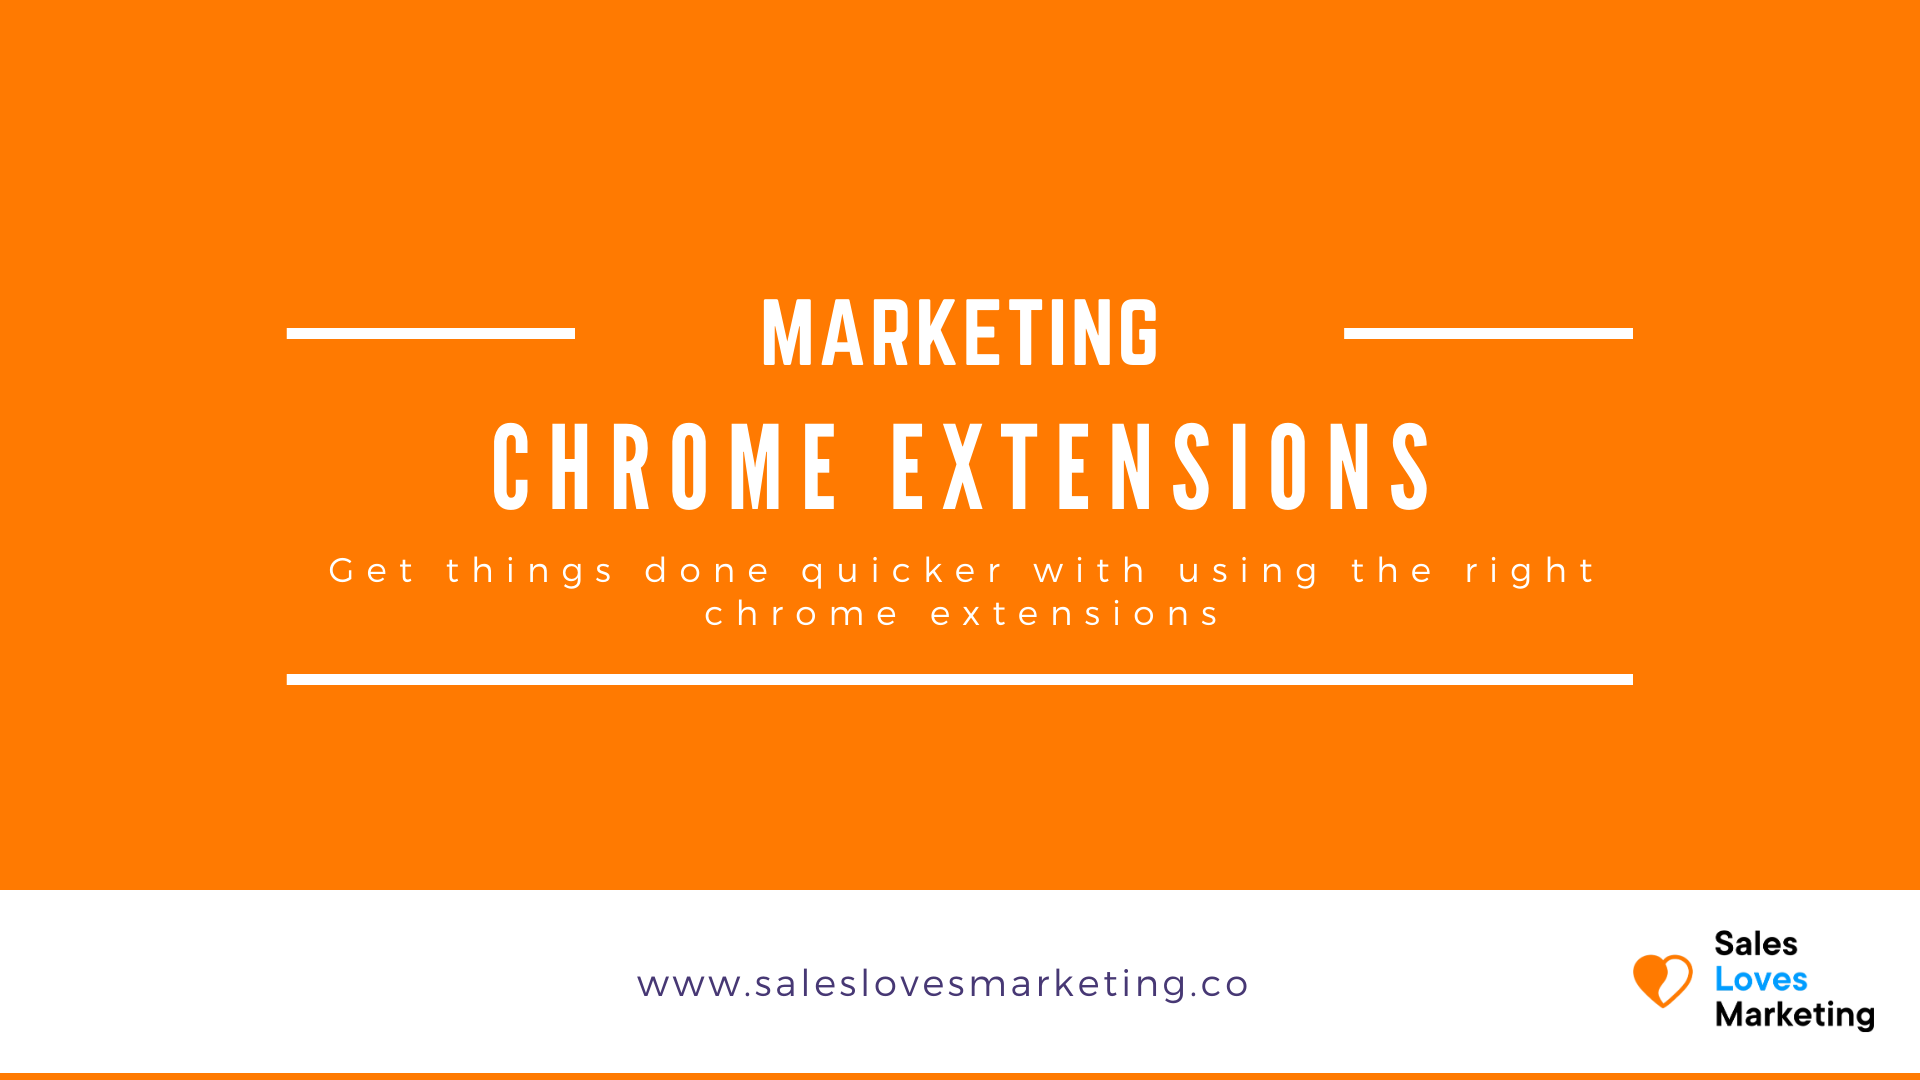 Essential chrome extensions in sales and or marketing